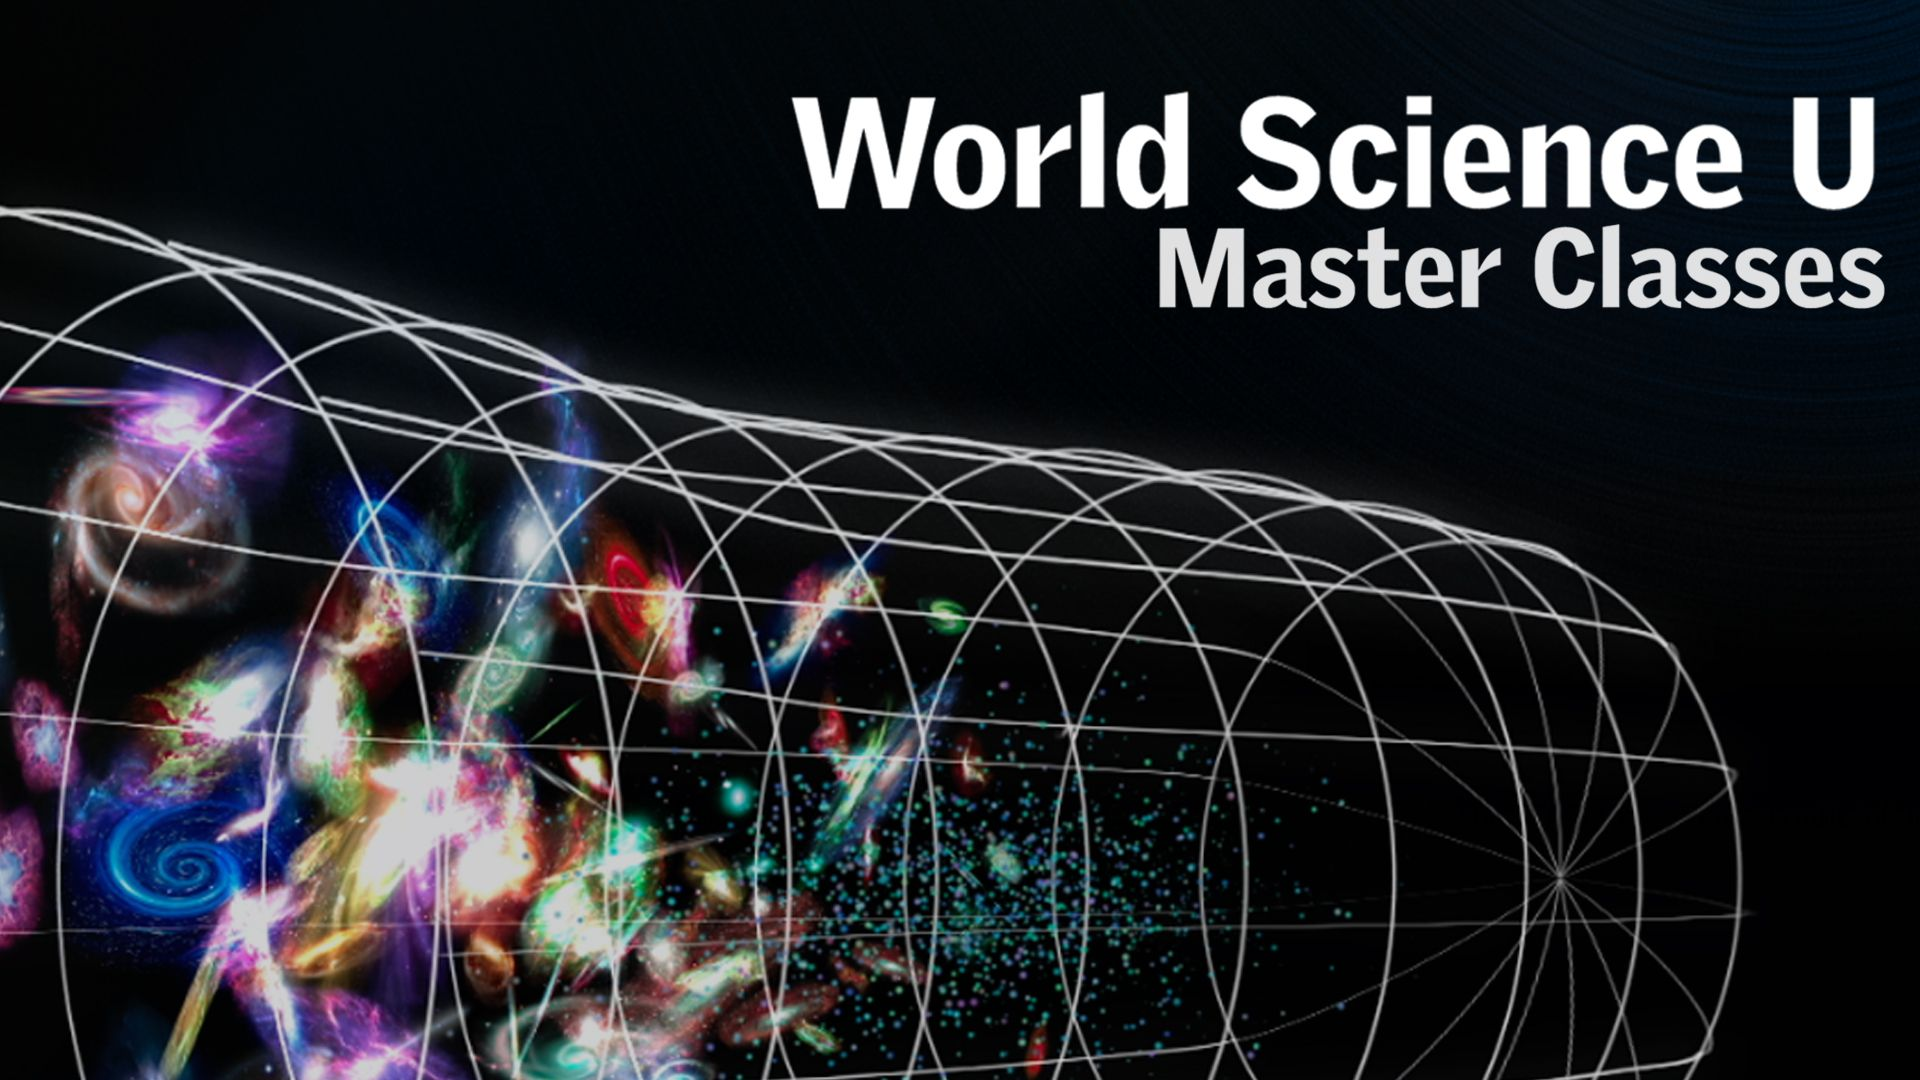 Whether you are a high school student, science major in college or a lifelong learner, World Science U is where you can explore the wonders of science guided by leading researchers and educators.